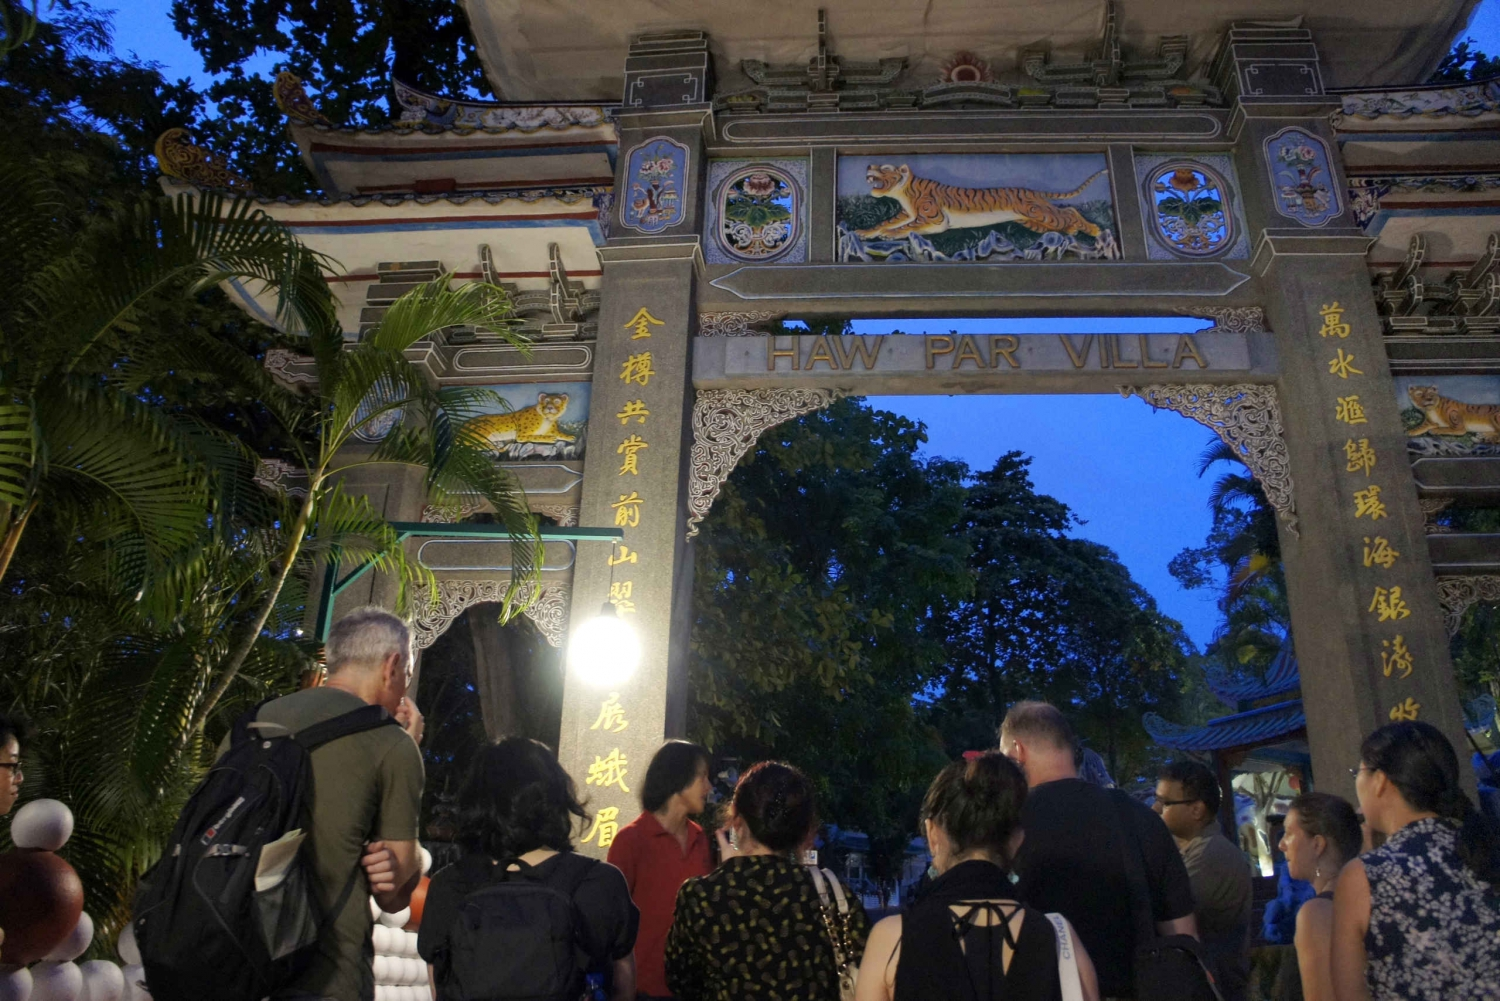 Haw Par Villa Twilight Walking Tour